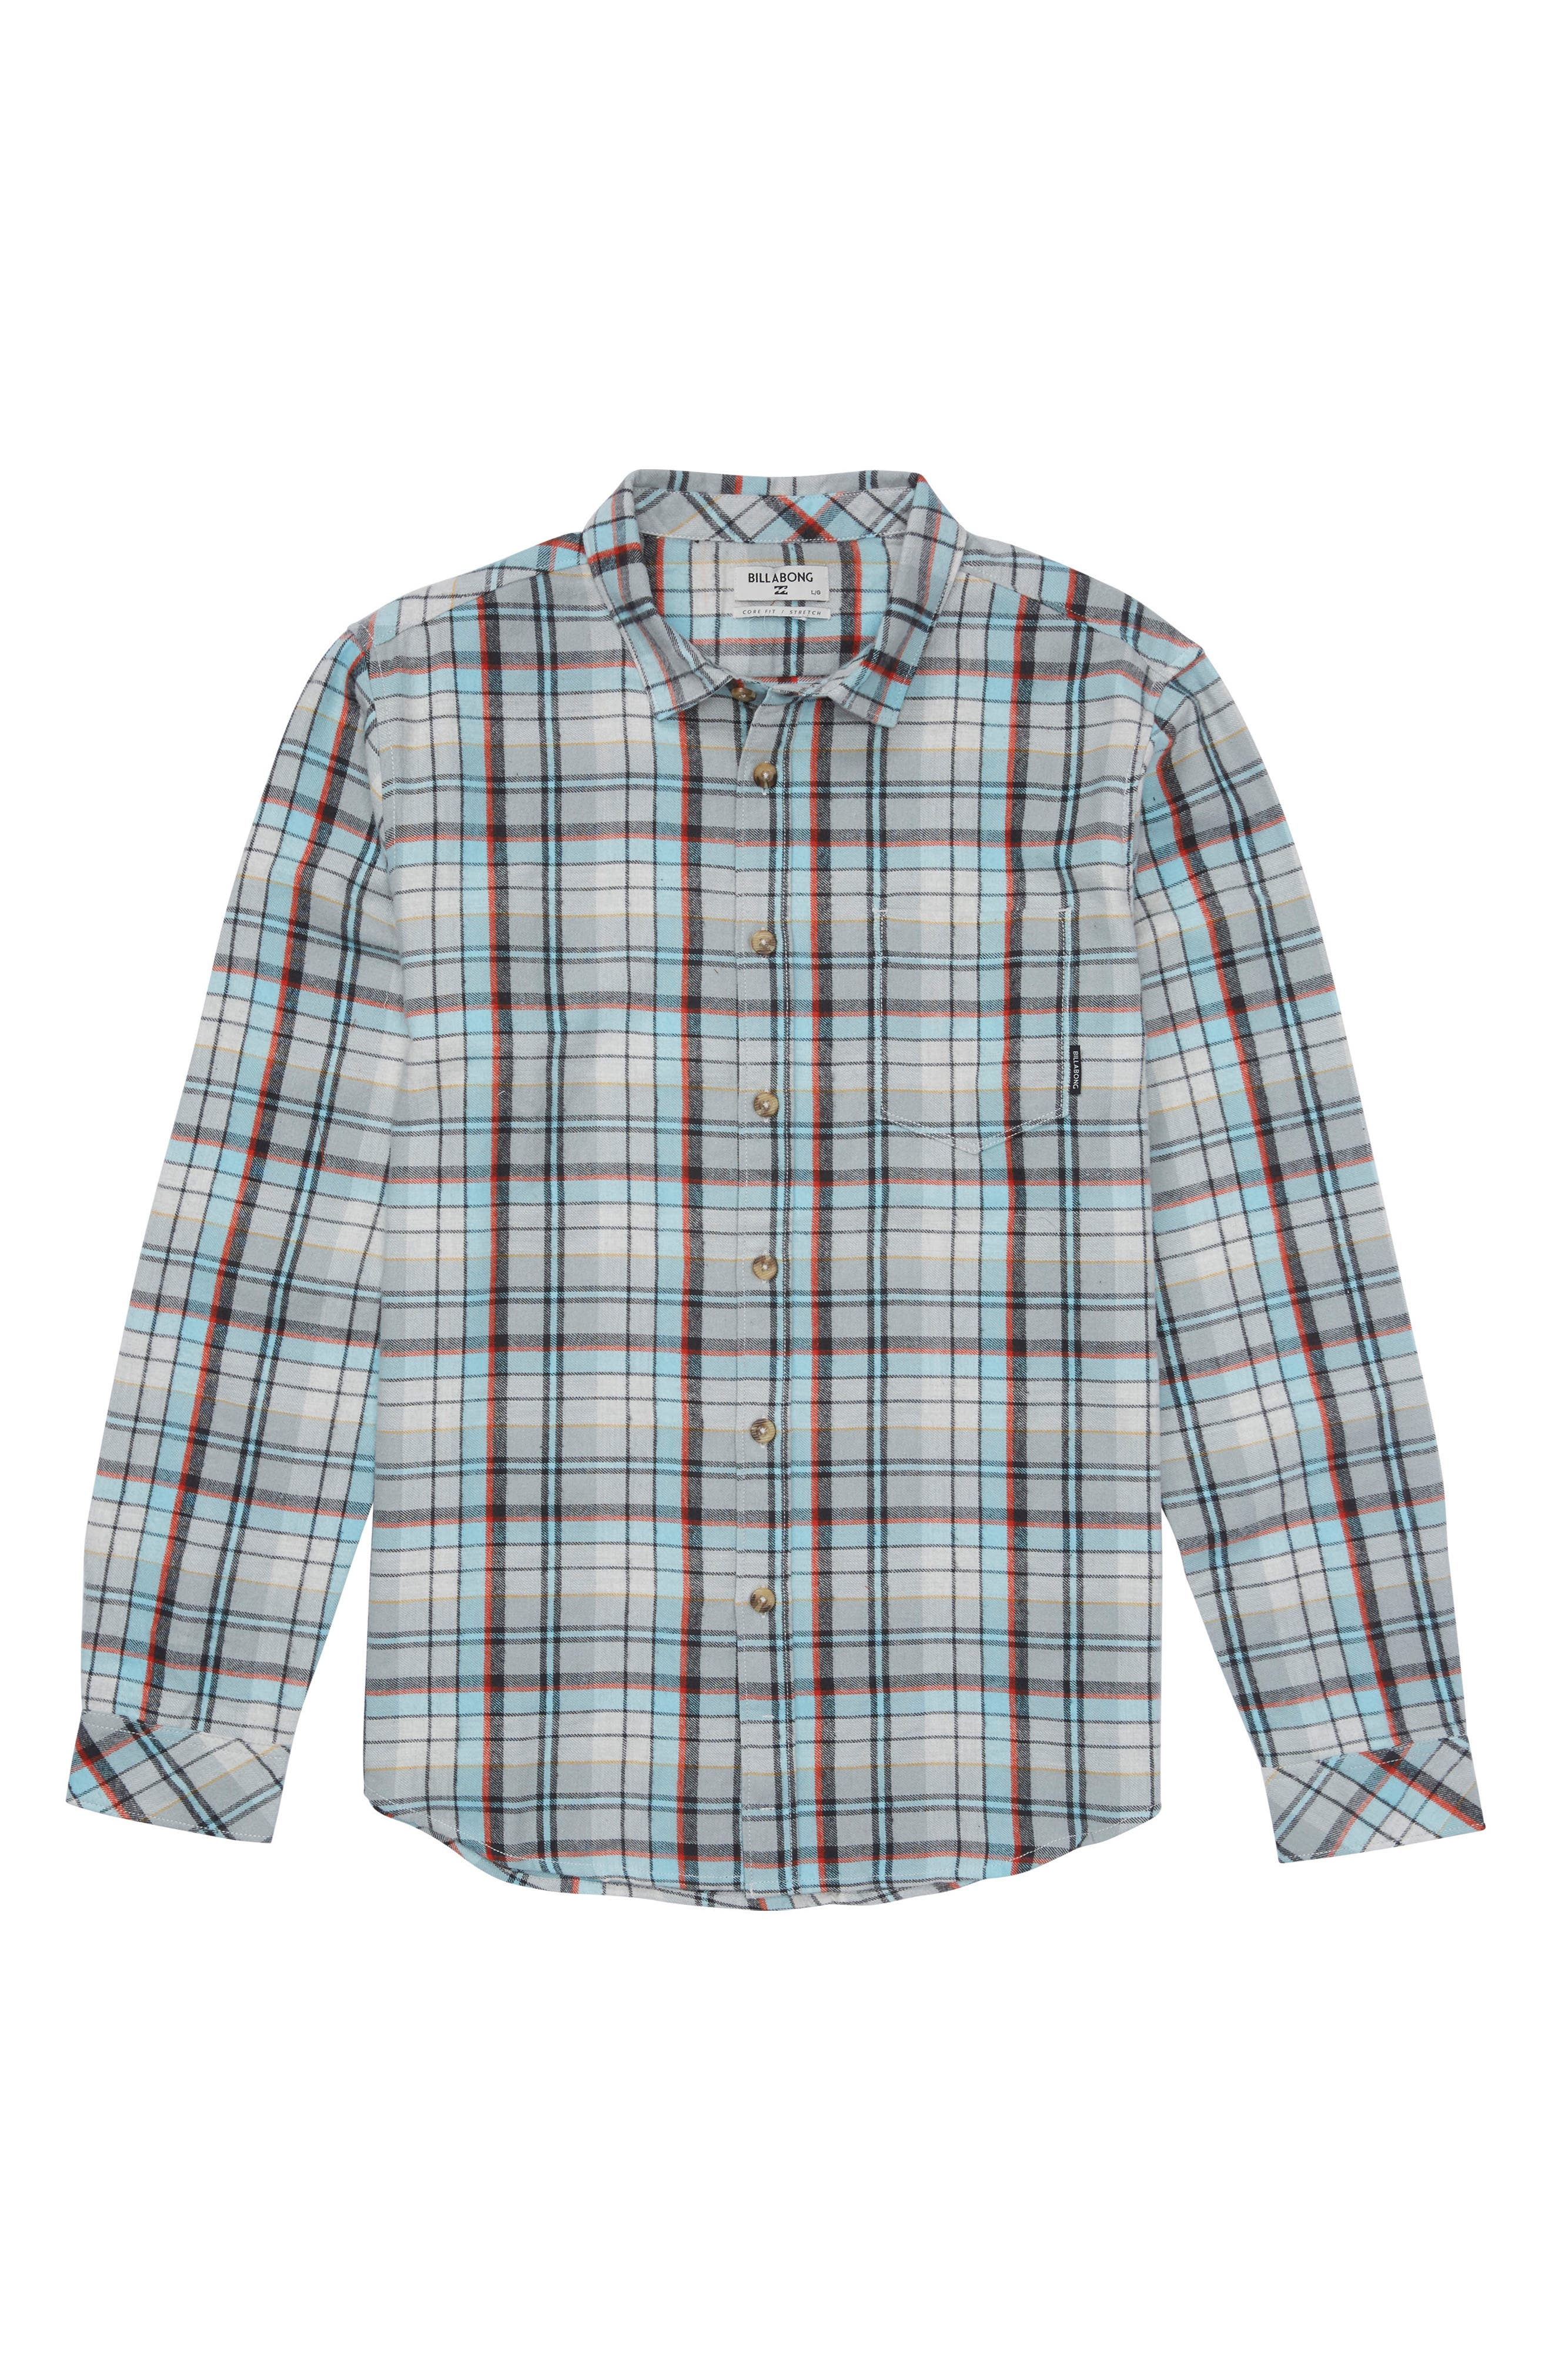 Coastline Plaid Flannel Shirt,                             Main thumbnail 1, color,                             Stone